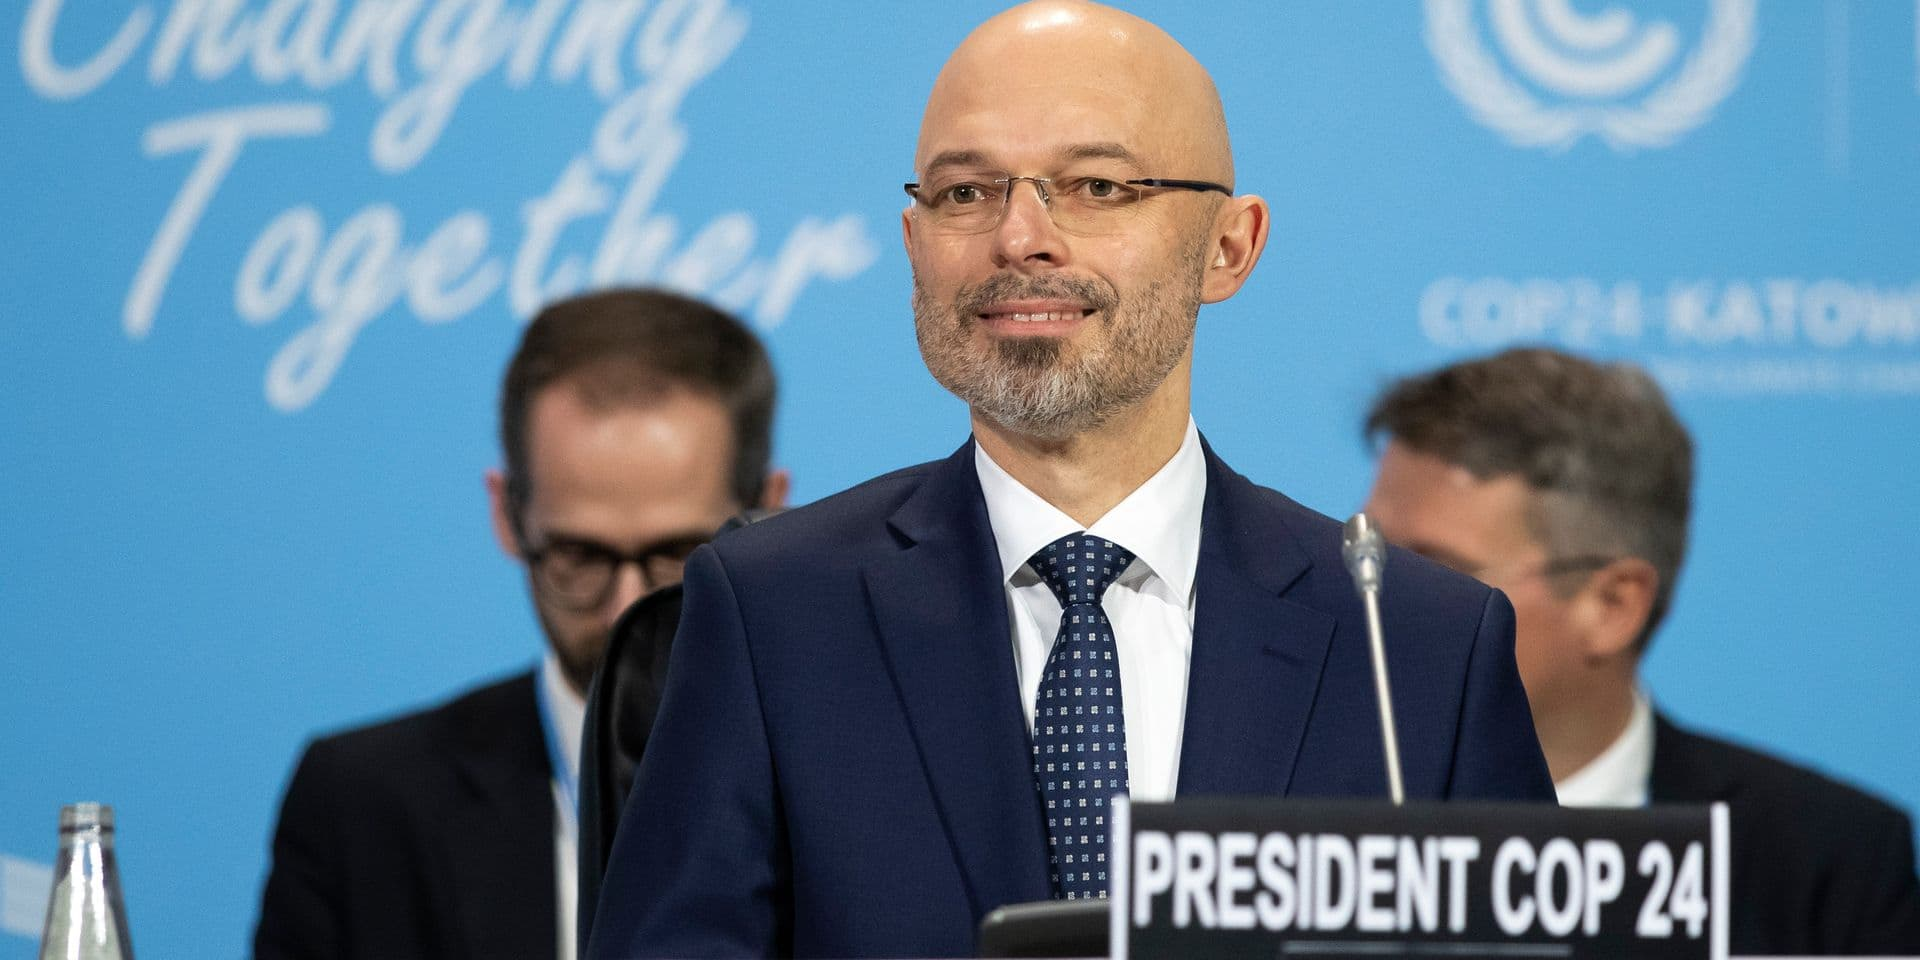 Michal Kurtyka, Polish Deputy Minister of the Environment and President of the COP24, looks on during the COP24 United Nations Climate Change Conference in Katowice, Poland, Monday, Dec. 3, 2018. (Peter Klaunzer/Keystone via AP)